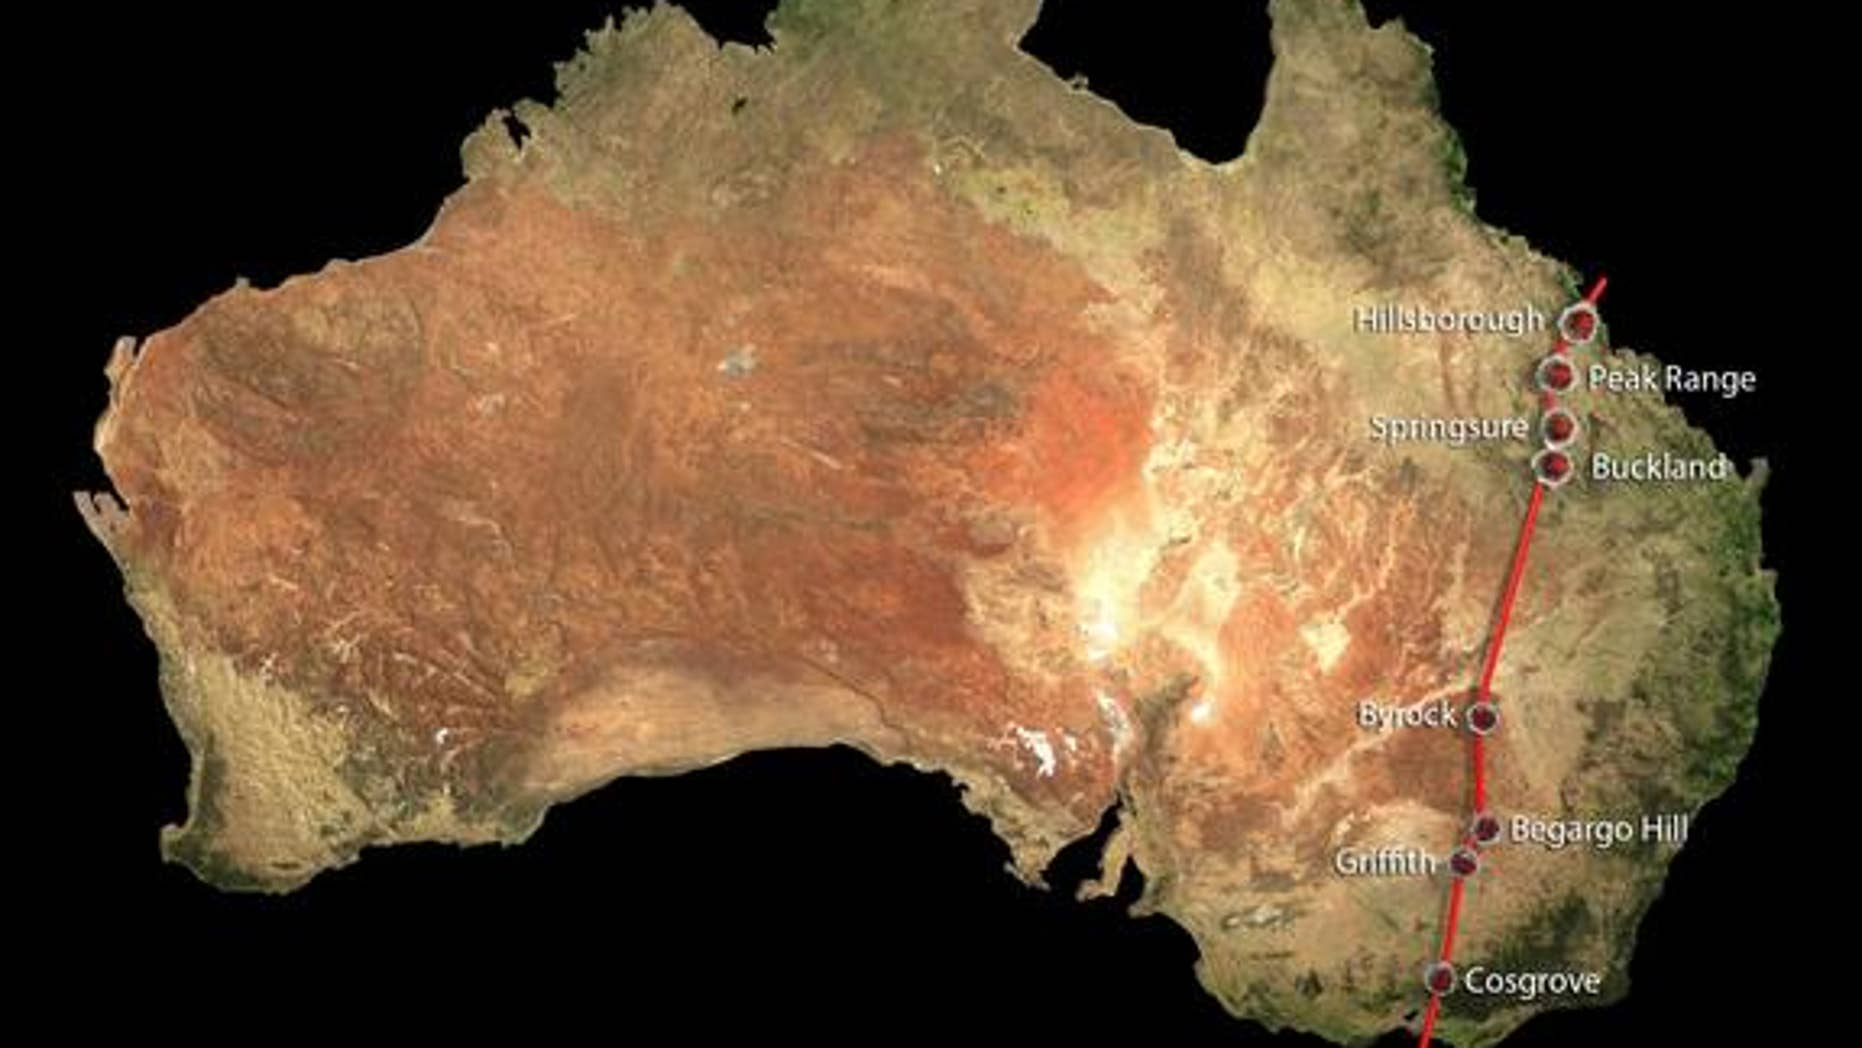 Scientists recently realized that separate chains of volcanic activity in Australia were actually caused by a single hotsput lurking under the Earth's lithosphere. The new superchain, called the Cosgrove Volcanic Track, spans 1,240 miles.